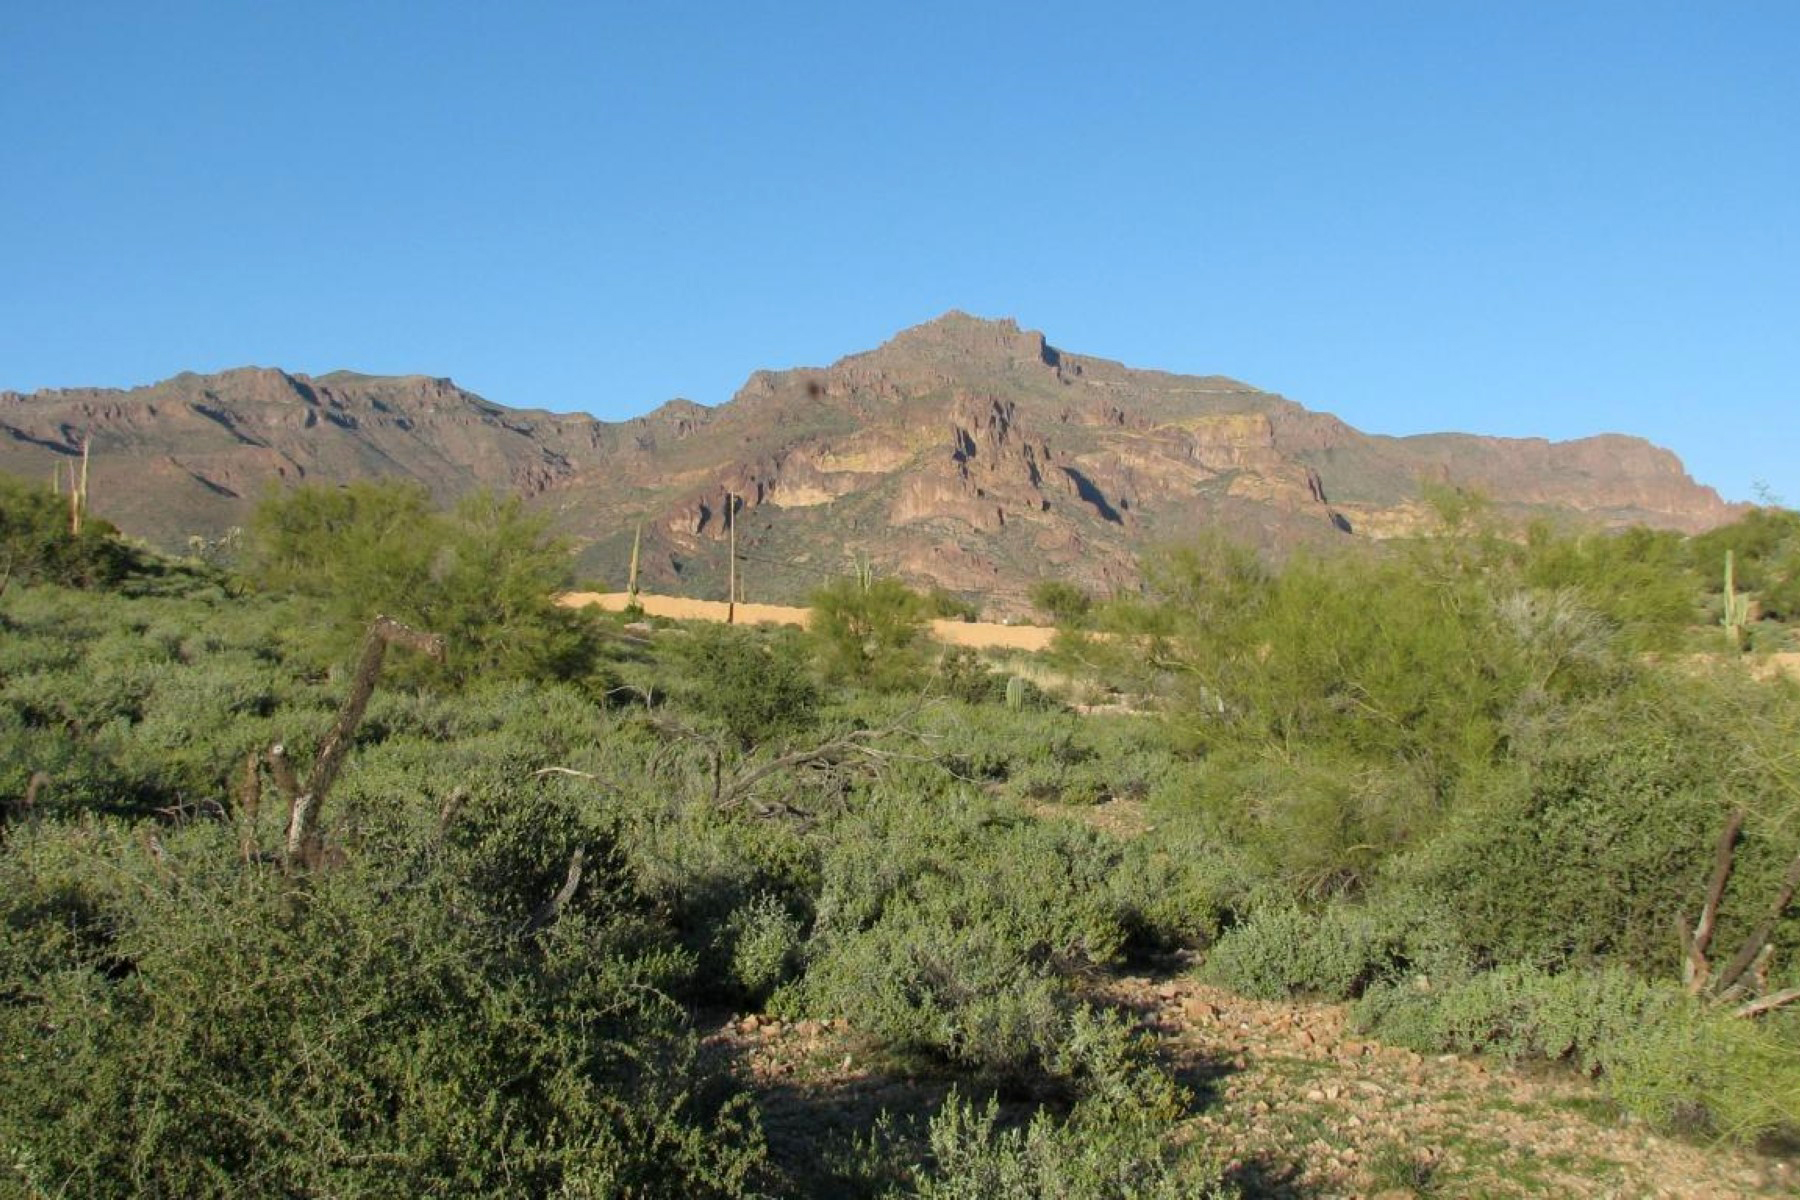 Terreno por un Venta en .93 Acres Lot In The Private Gated Luxury Golf Community Of Superstition Mounta 3272 S Petroglyph Trail #27 Gold Canyon, Arizona, 85118 Estados Unidos